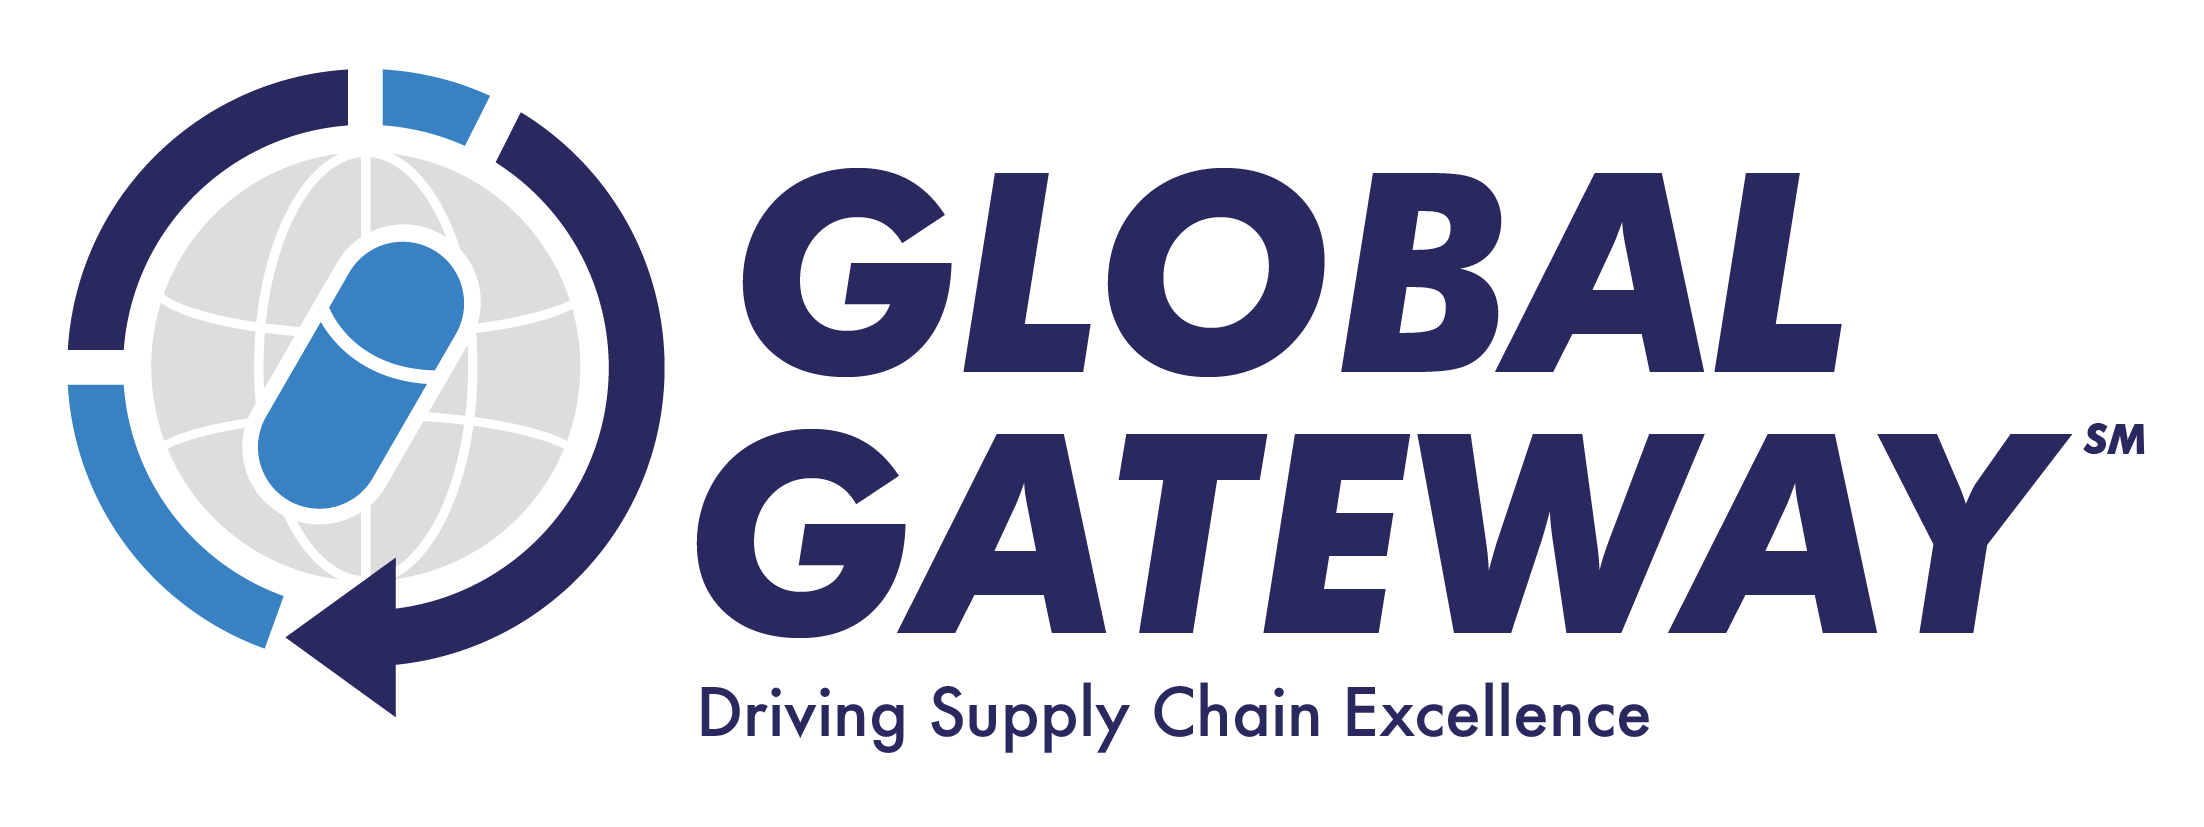 Global Gateway℠ drives supply chain excellence for clinical trial